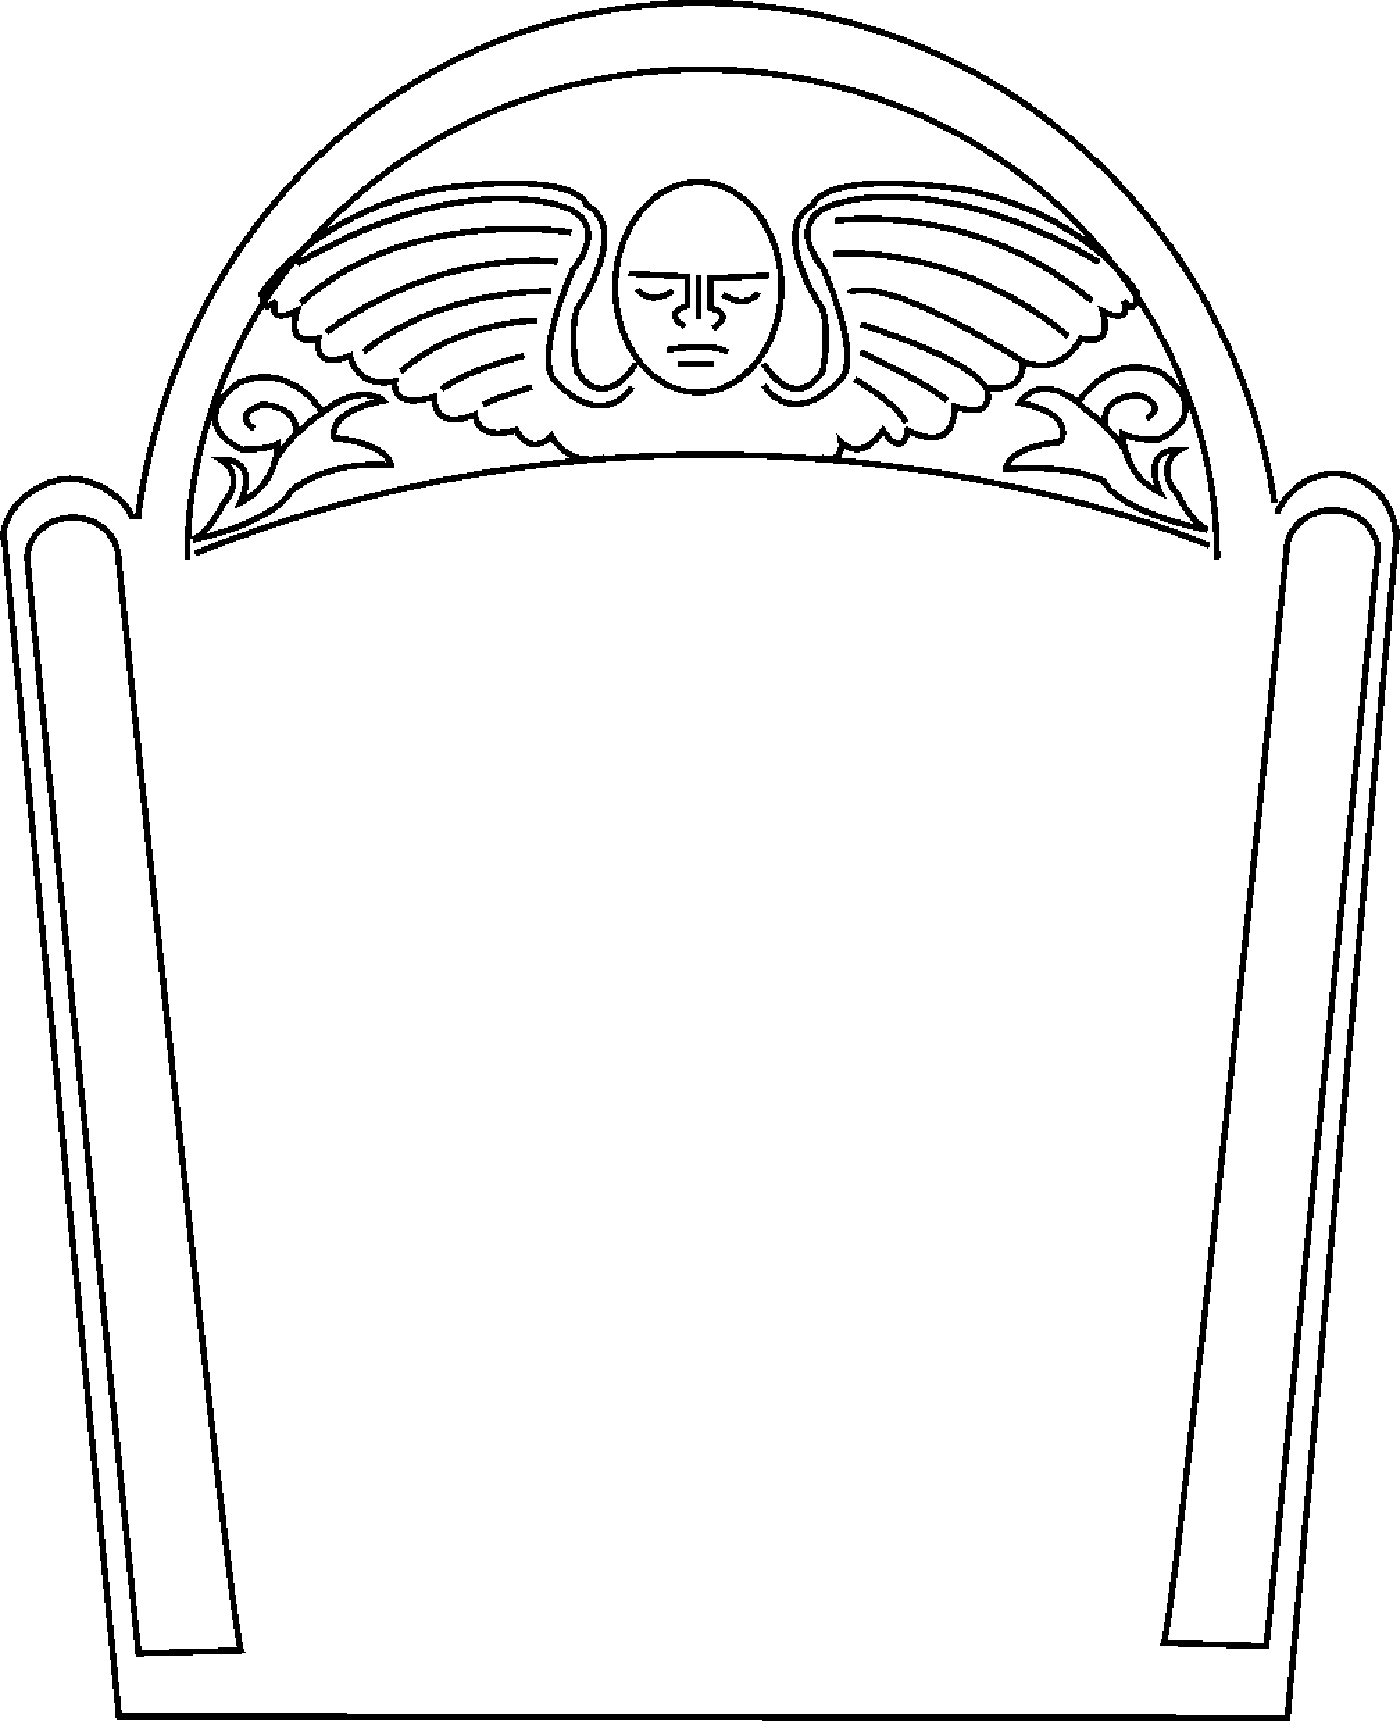 Free Headstones Cliparts, Download Free Clip Art, Free